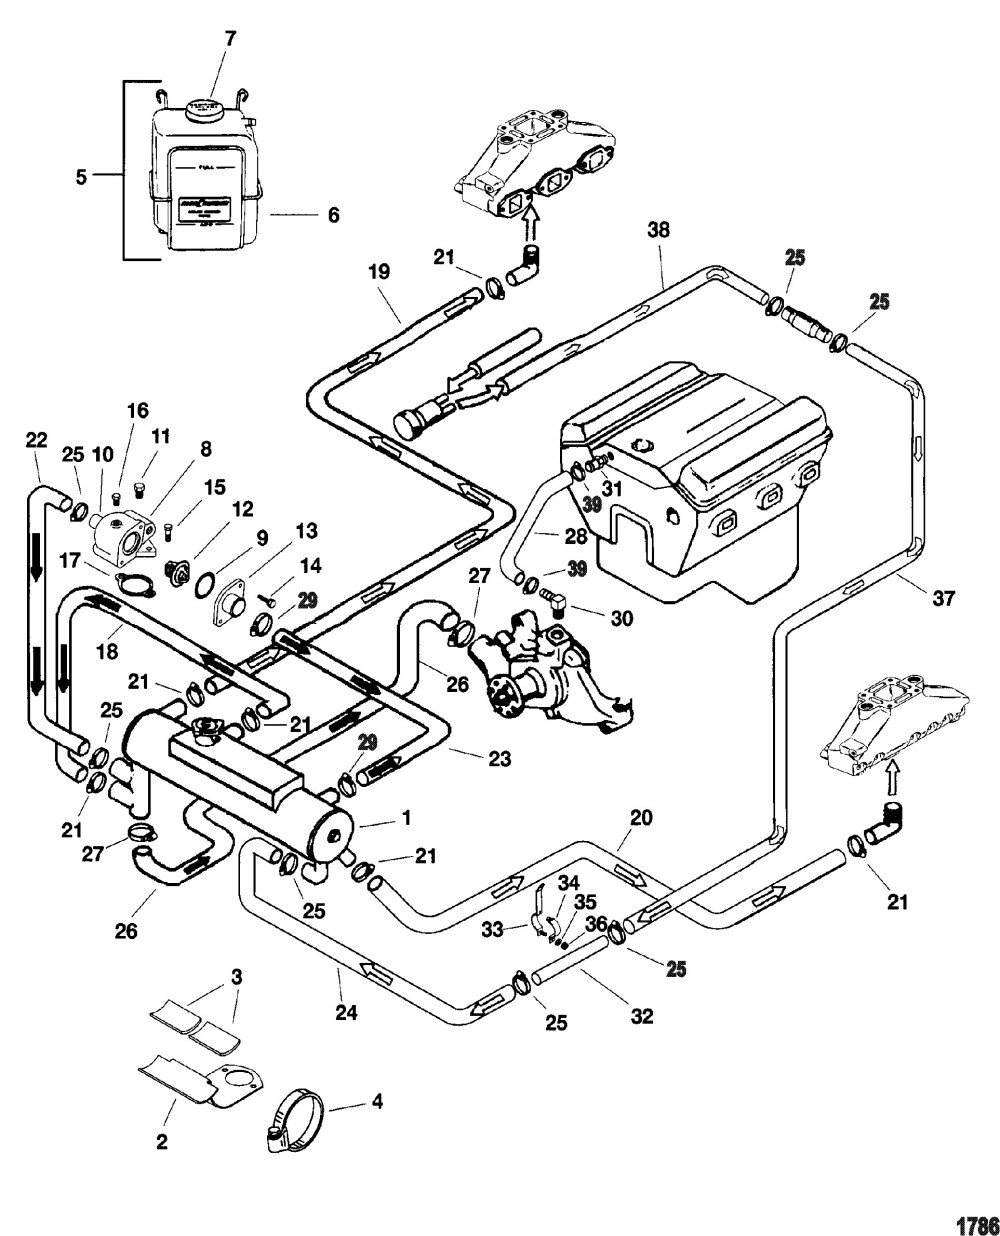 medium resolution of 2012 ford f250 exhaust diagram diy wiring diagrams u2022 rh dancesalsa co 2005 f250 fuse box